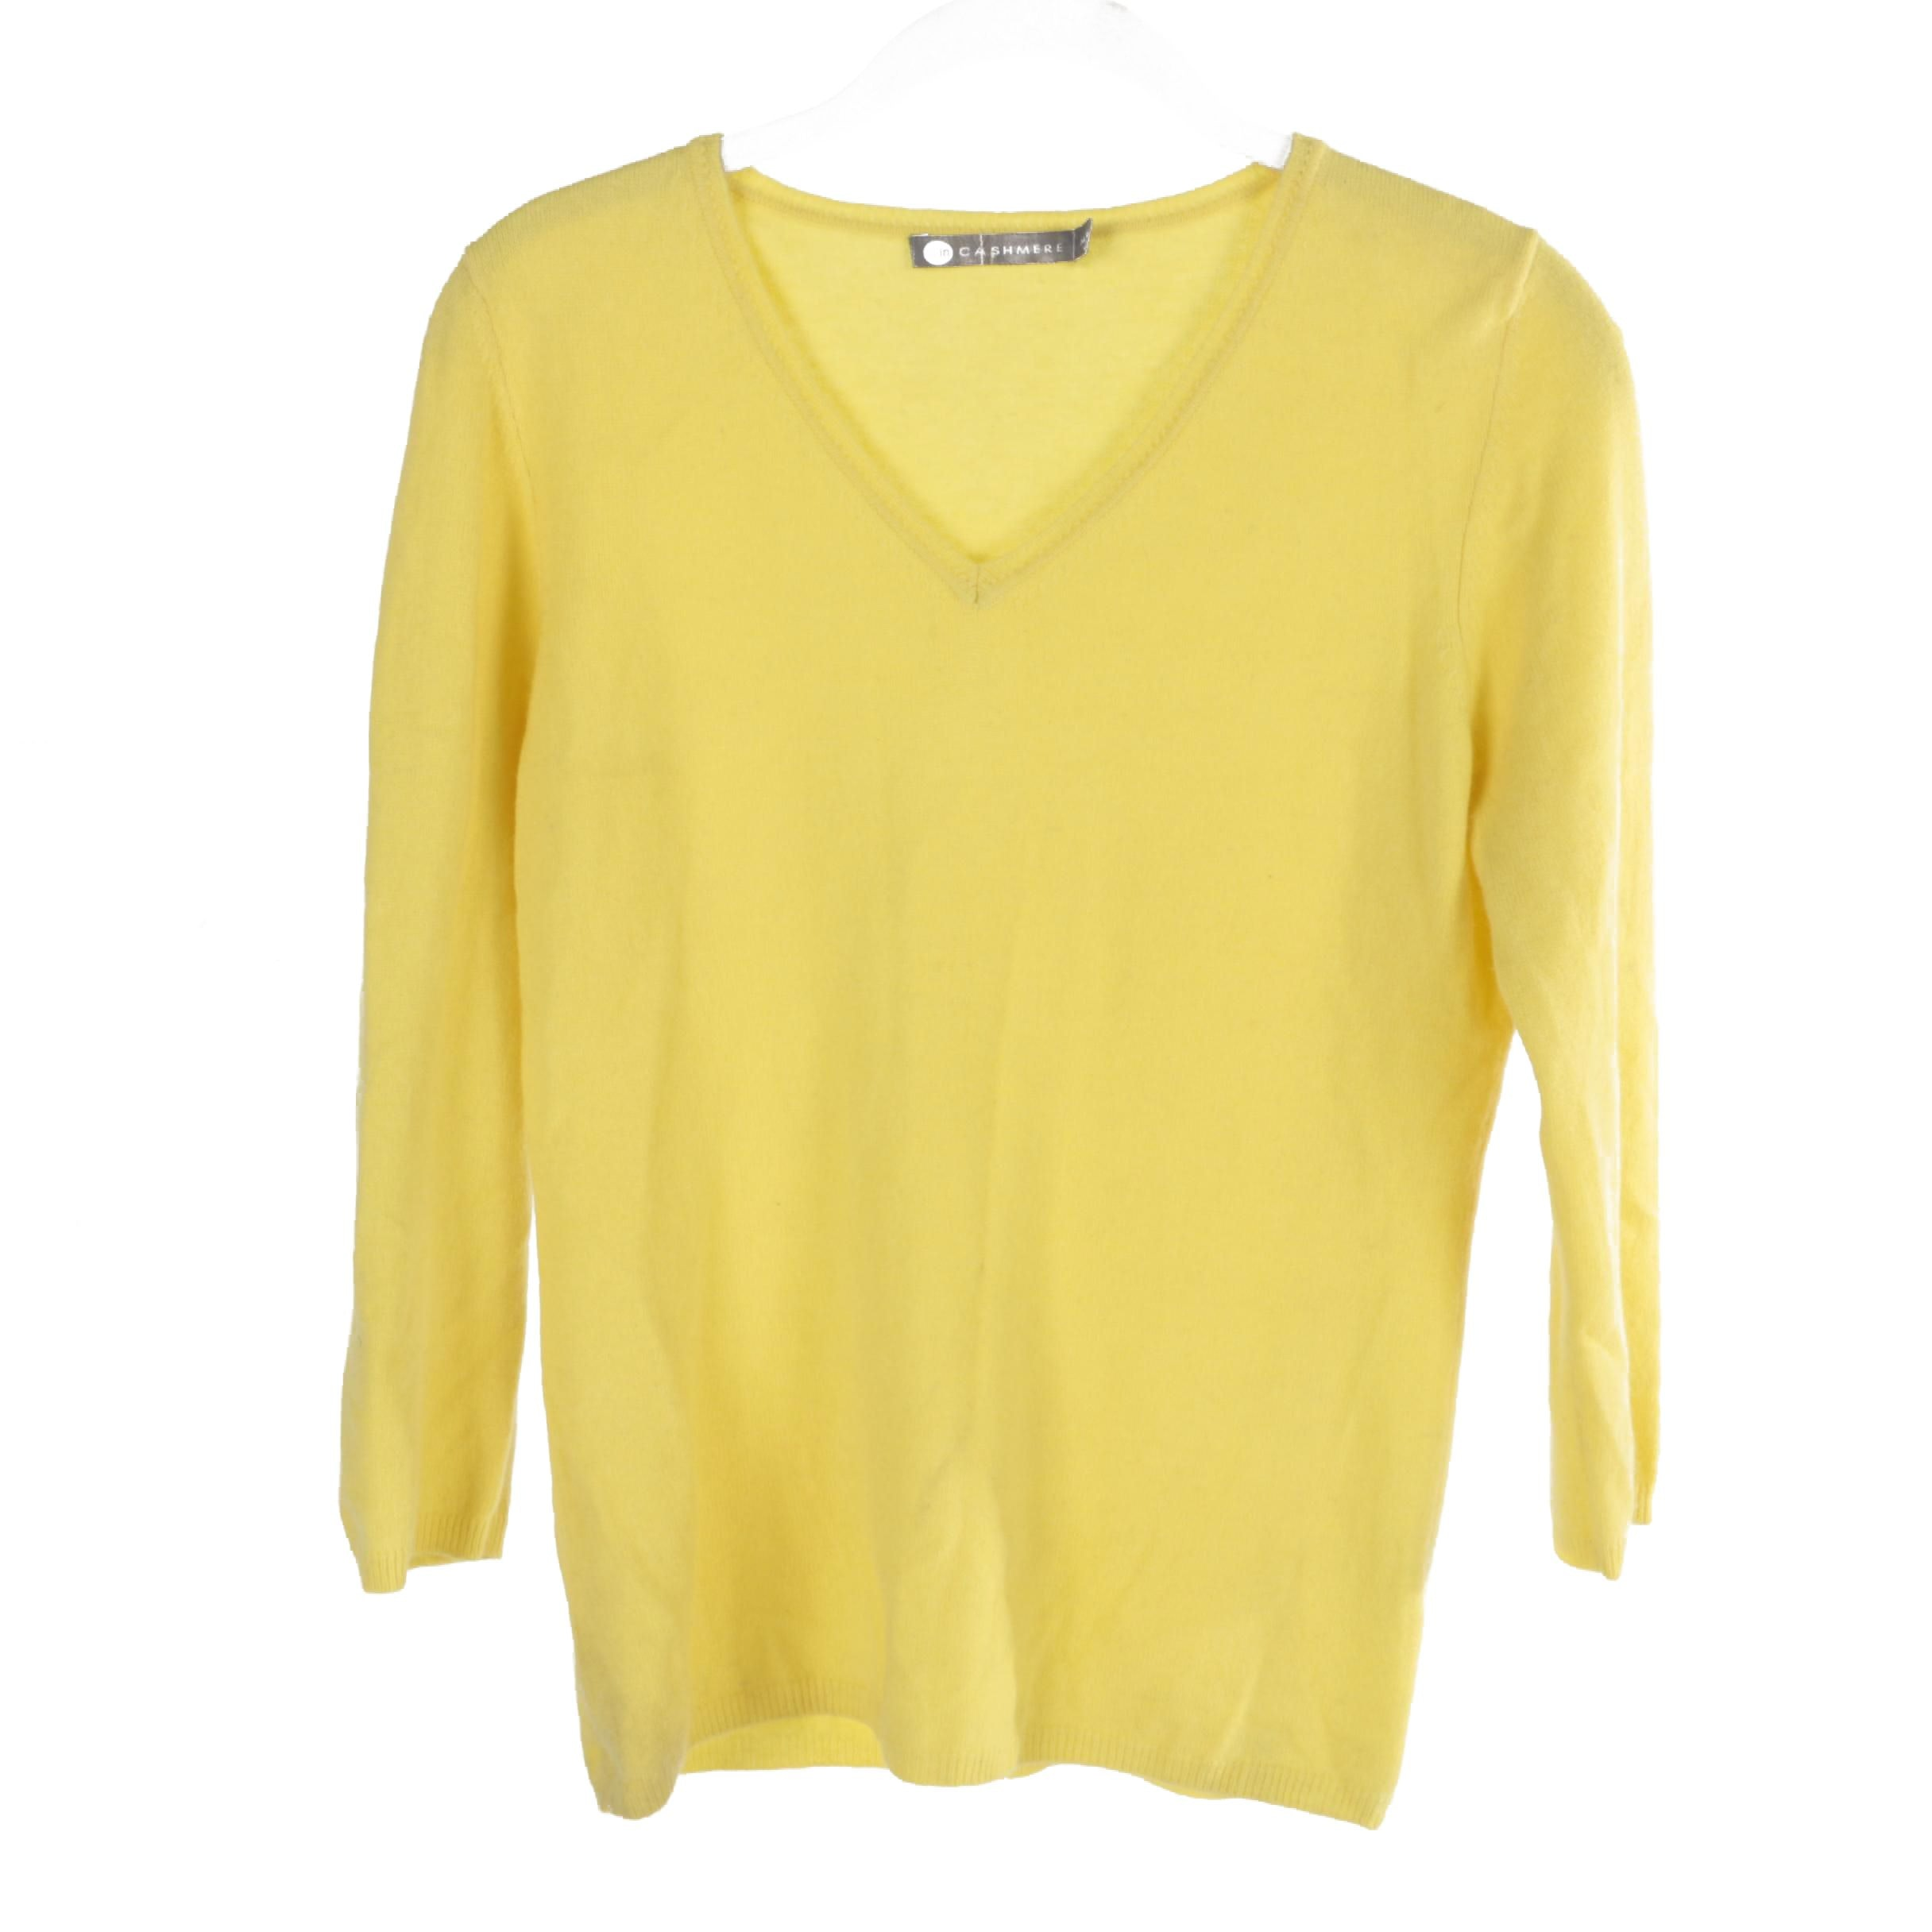 In Cashmere Yellow Cashmere Sweater